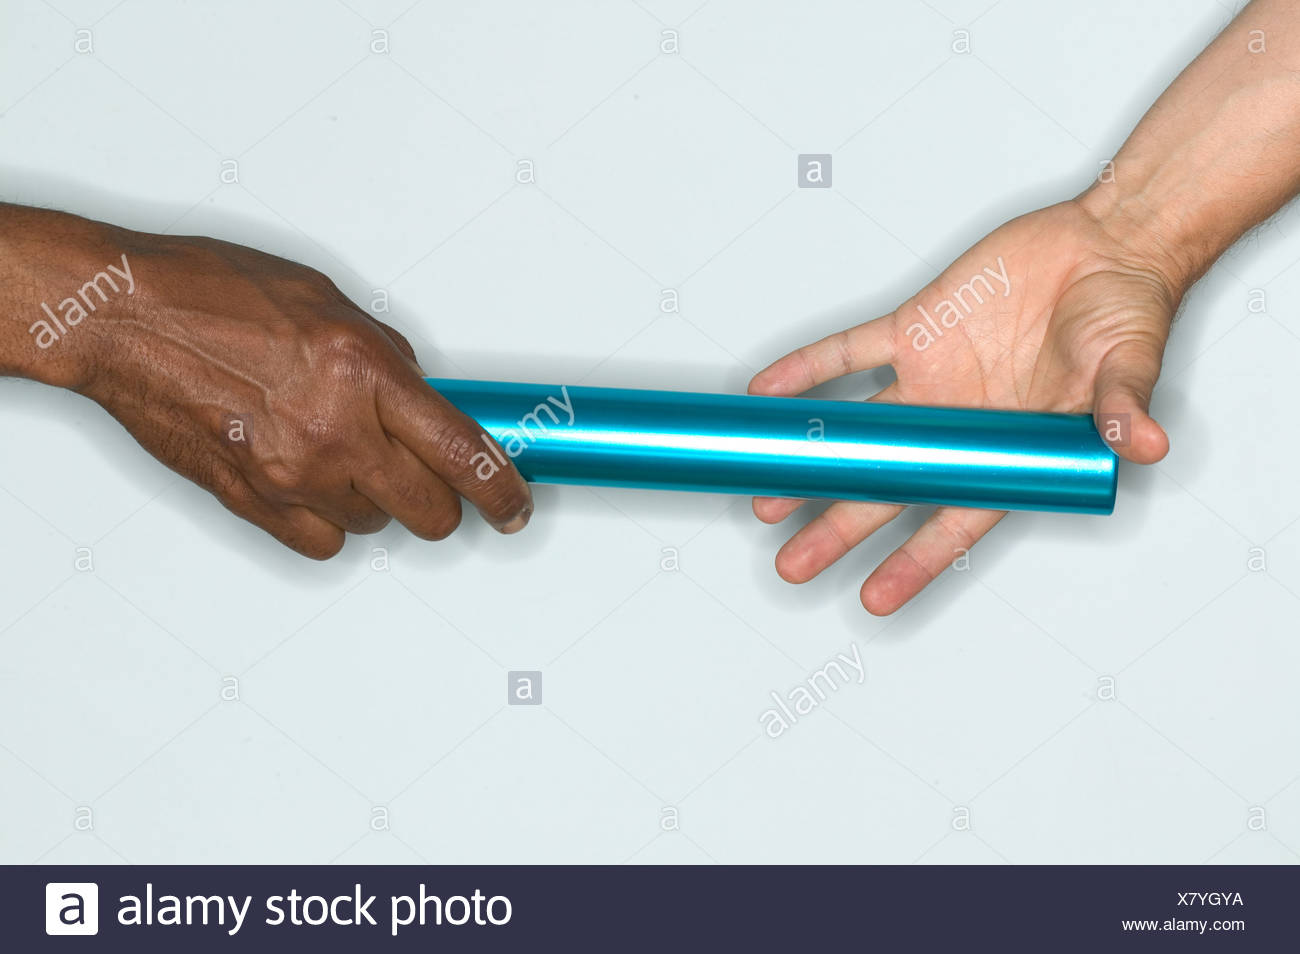 Passing baton from one hand to another - Stock Image